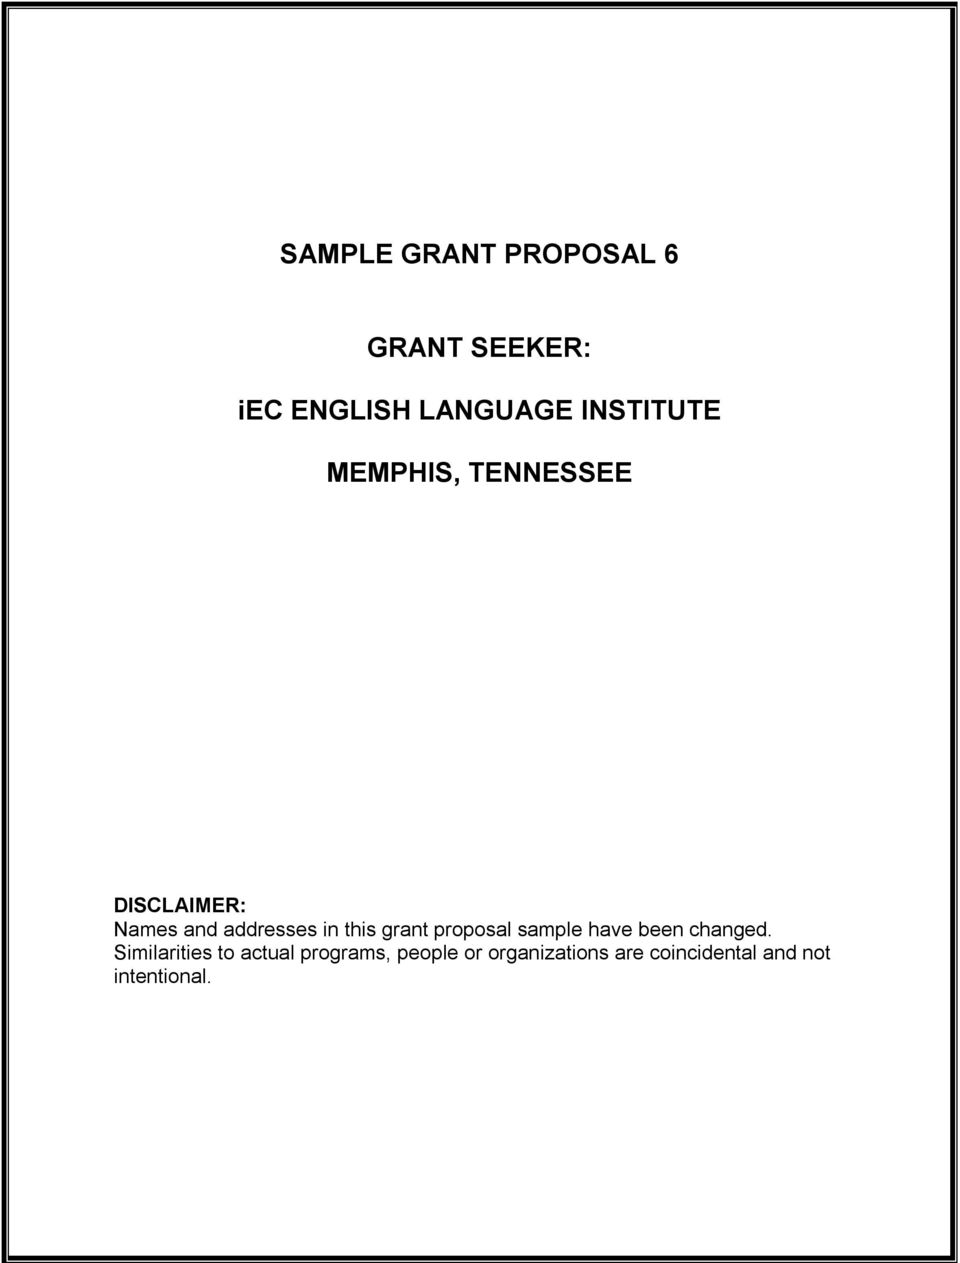 this grant proposal sample have been changed.